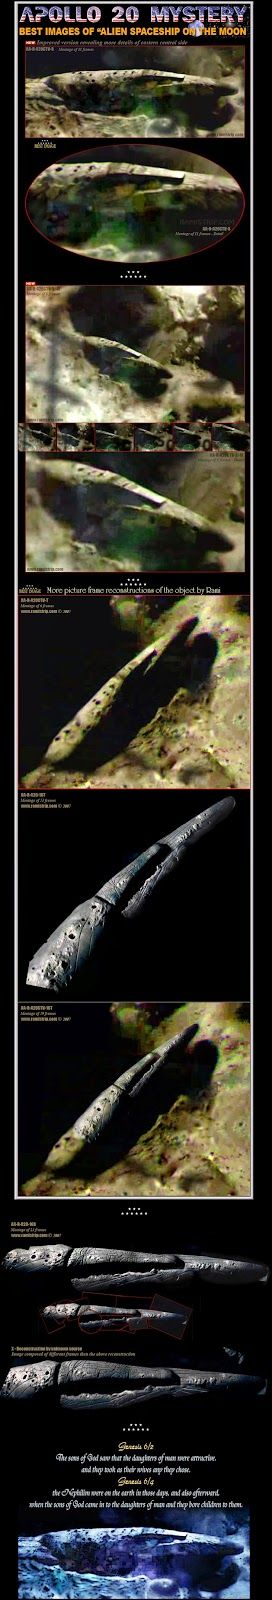 The Top Secret Apollo 20 Mission: 1.5 Million-Year-Old Cigar UFO & Female Alien in Suspended Animation | Humans Are Free